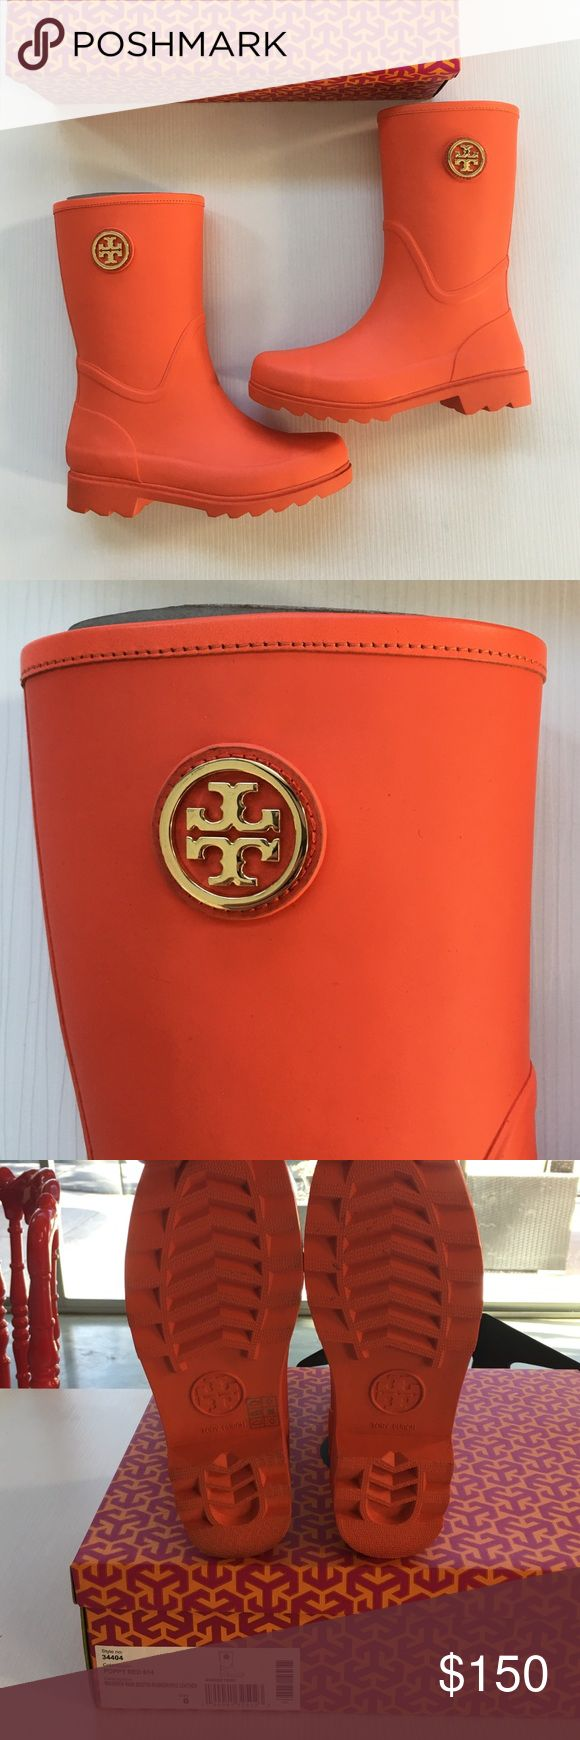 Tory Burch Rain Boots Brand new with tags absolutely adorable Tory Burch Rain boots!! Classic matte orange boot finished with gold logo details.. absolutely never worn they still have all the packaging. Comes with box. Tory Burch Shoes Winter & Rain Boots